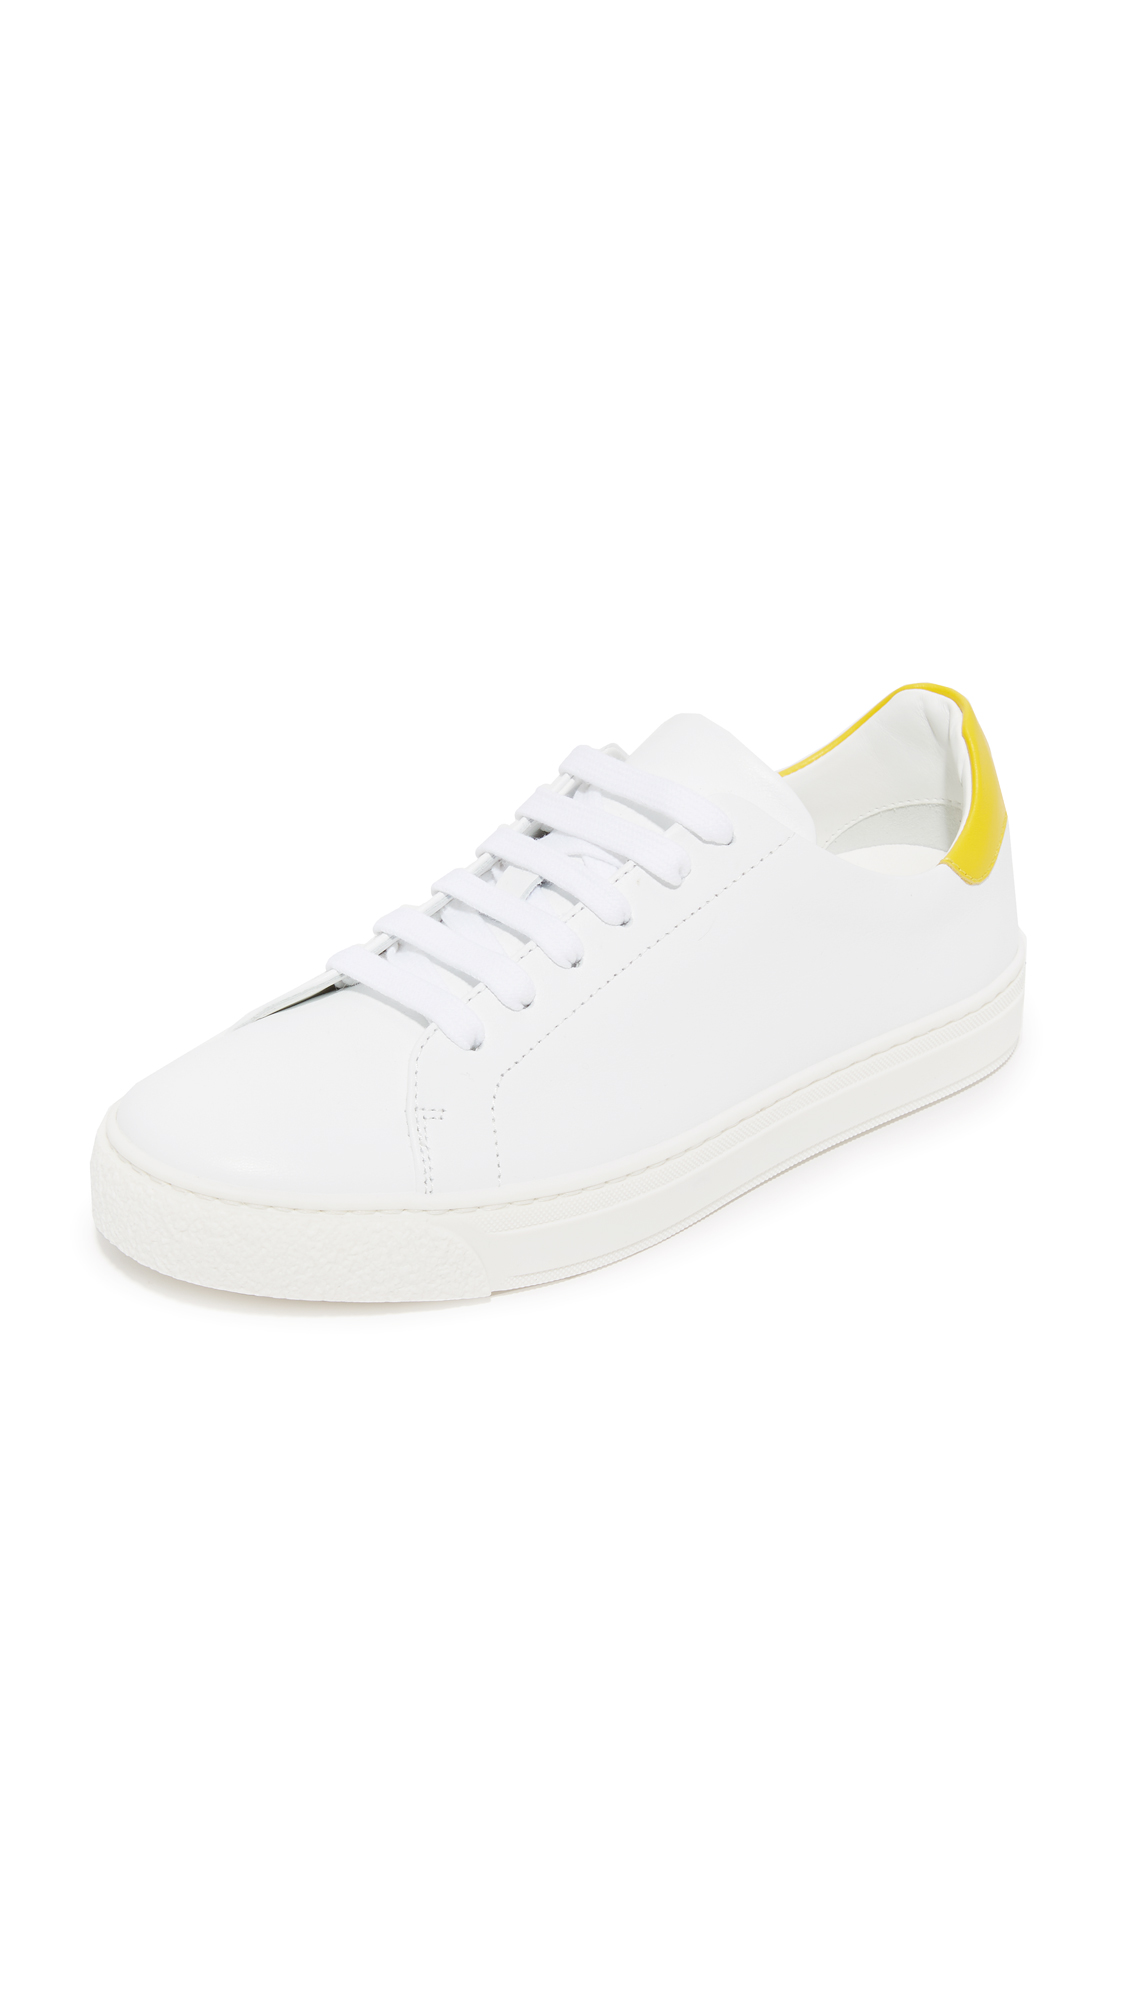 Anya Hindmarch Tennis Shoe All Over Wink Sneakers - White at Shopbop